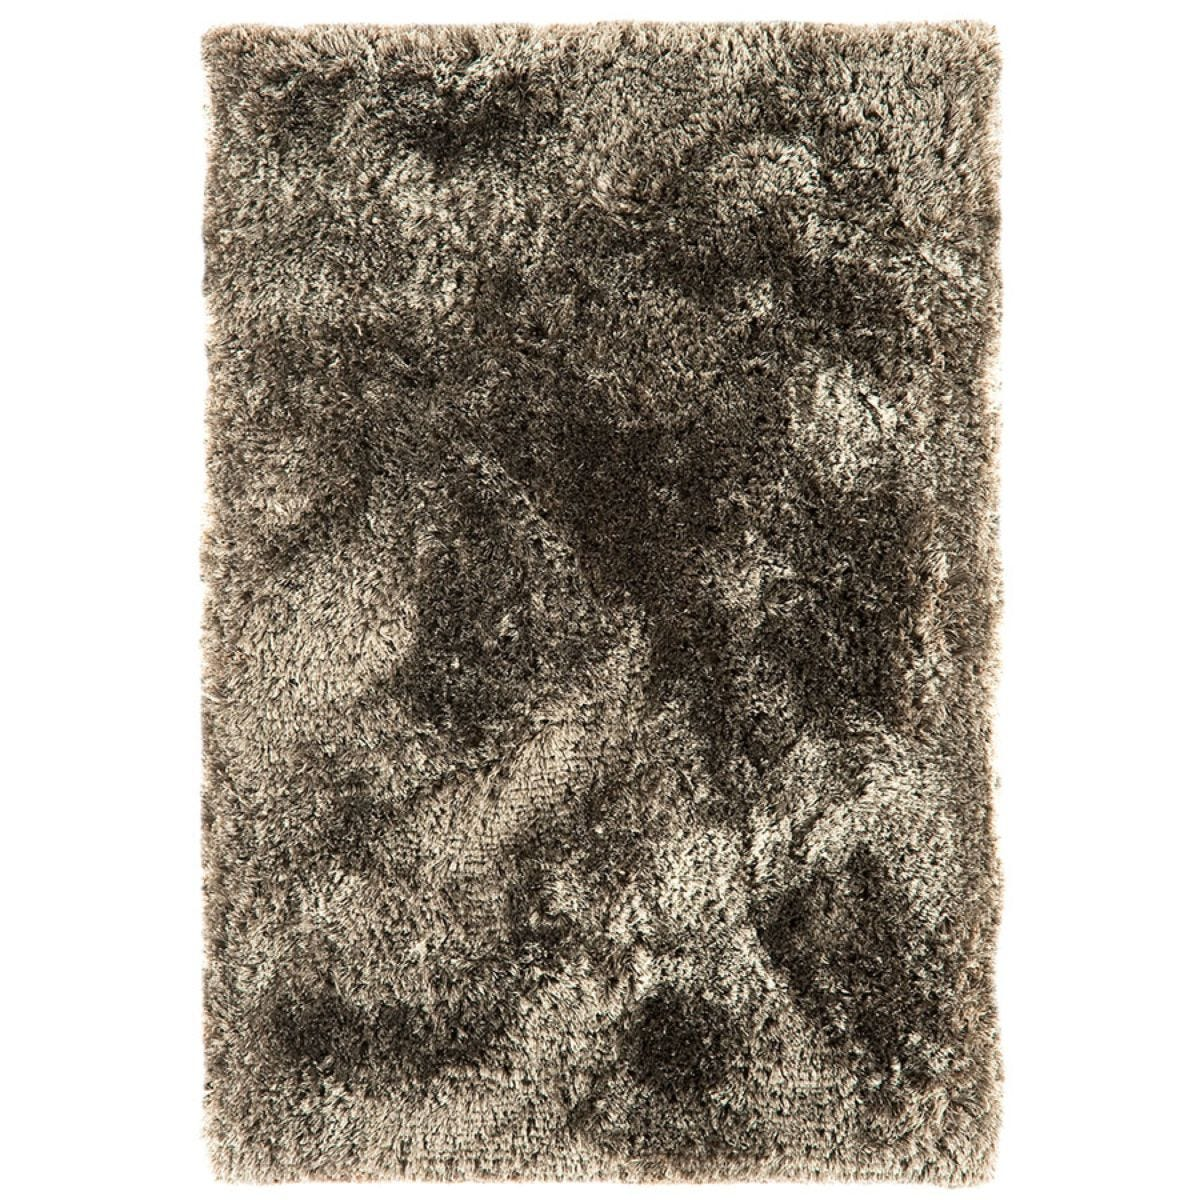 Asiatic Plush Shaggy Rug, 160 x 230cm - Taupe